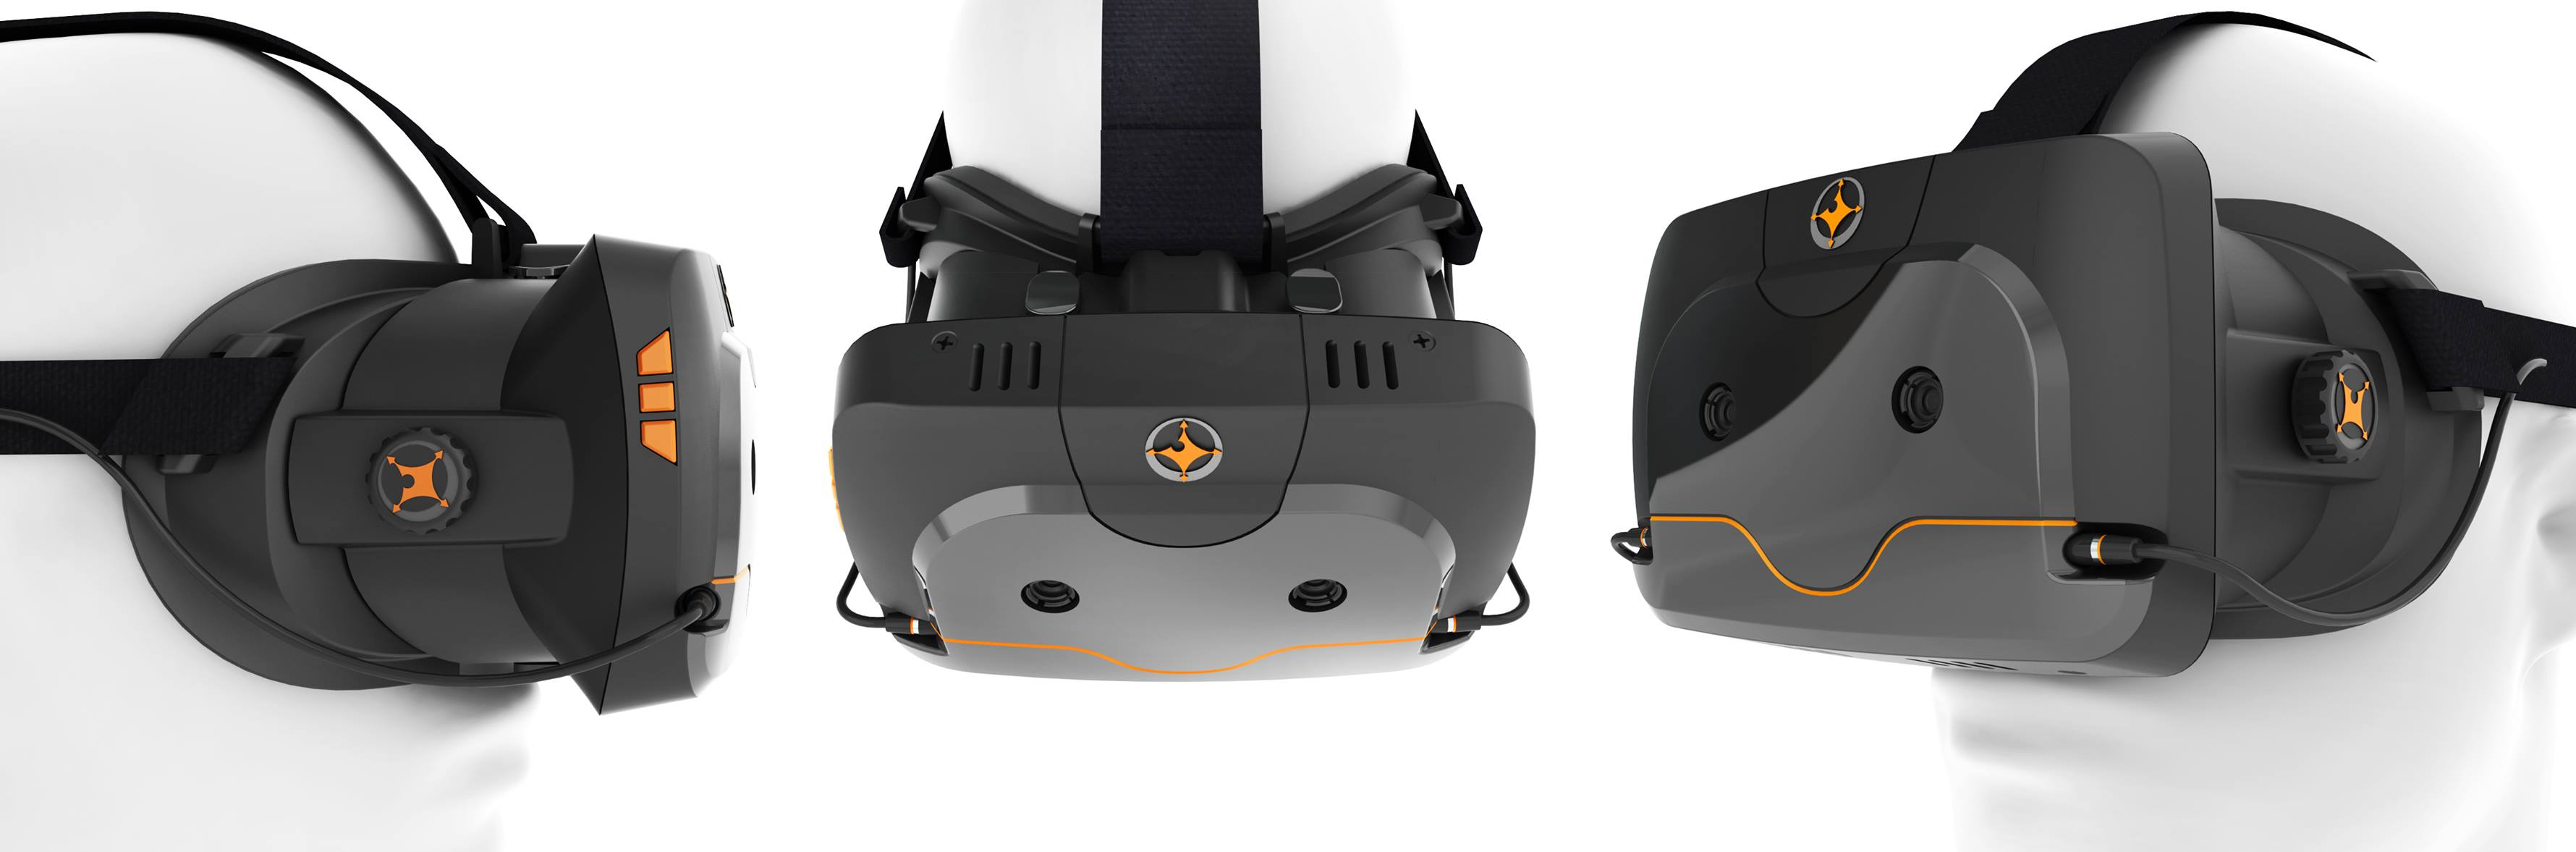 1ec292cecad7 True Player Gear CEO Shares Details on  Totem  Oculus Rift Competitor